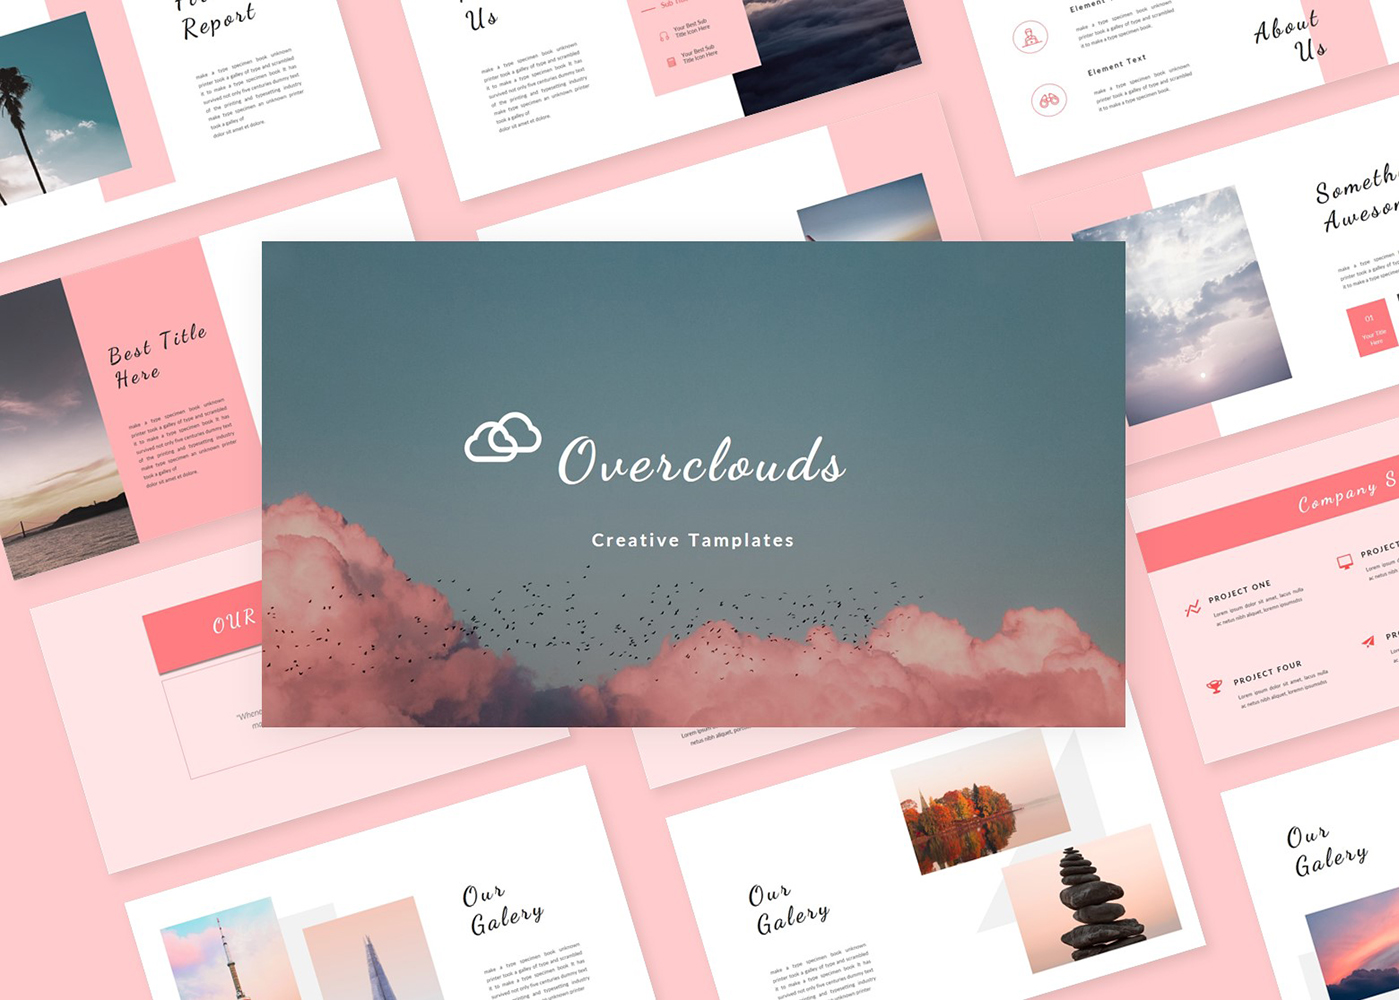 Overclouds Creative Template PowerPoint Template